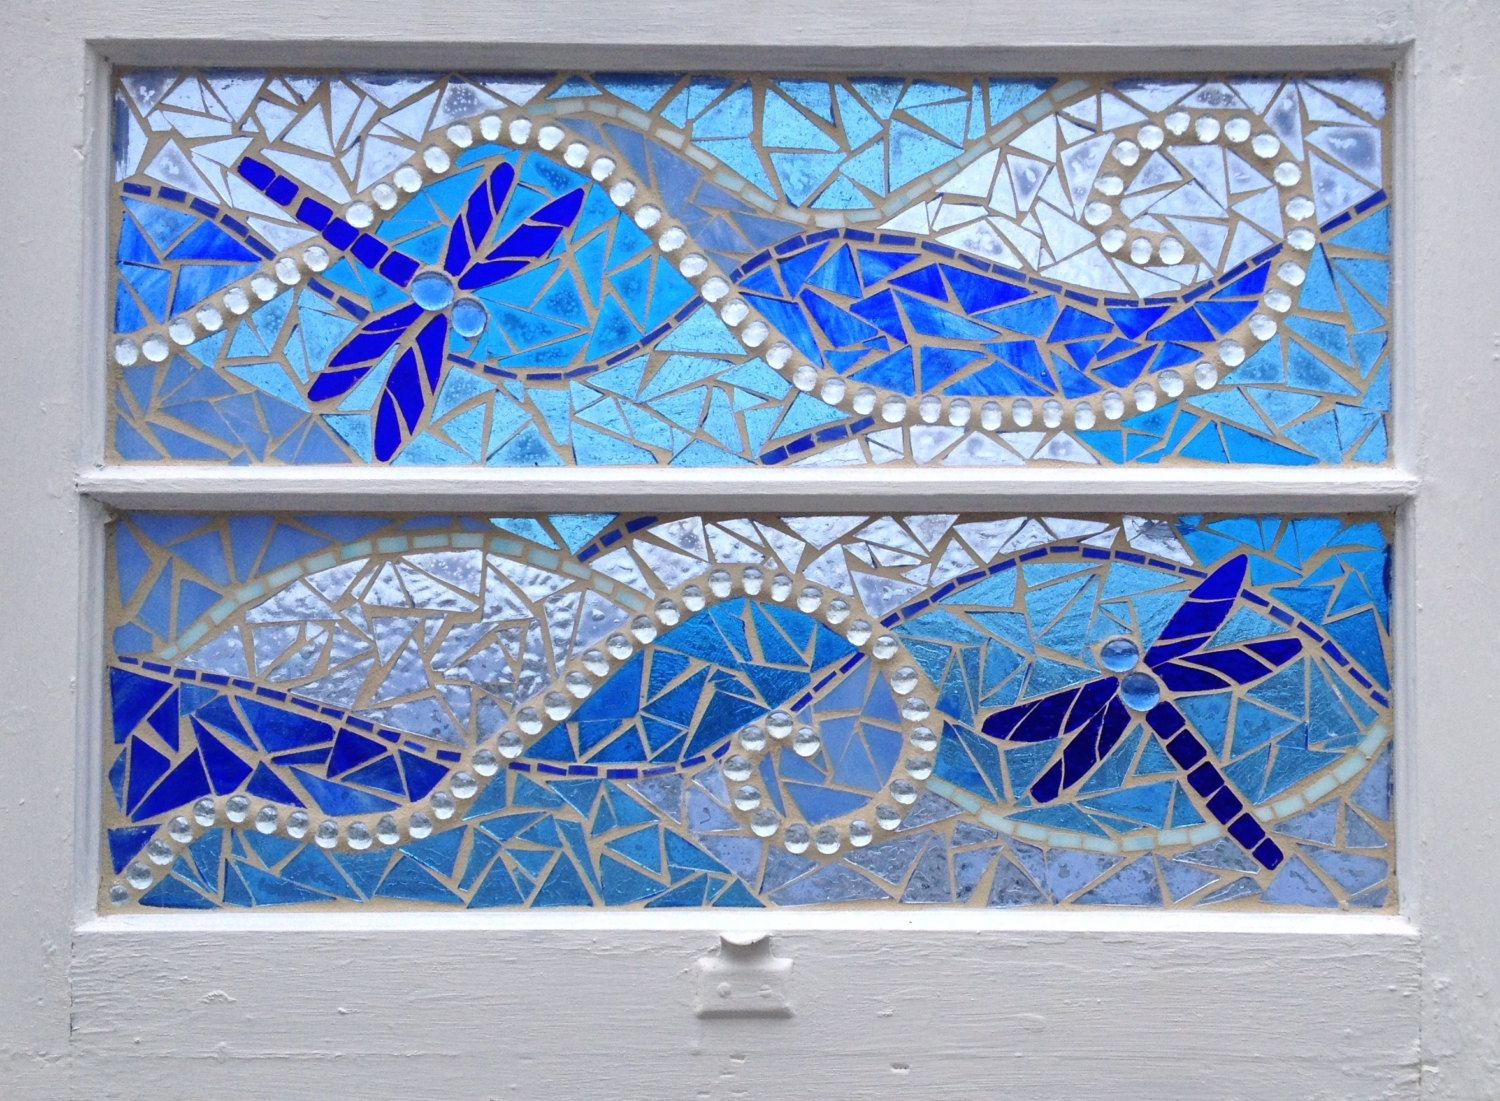 Ocean Wave Stained Glass Mosaic Artwork Vintage Recycled